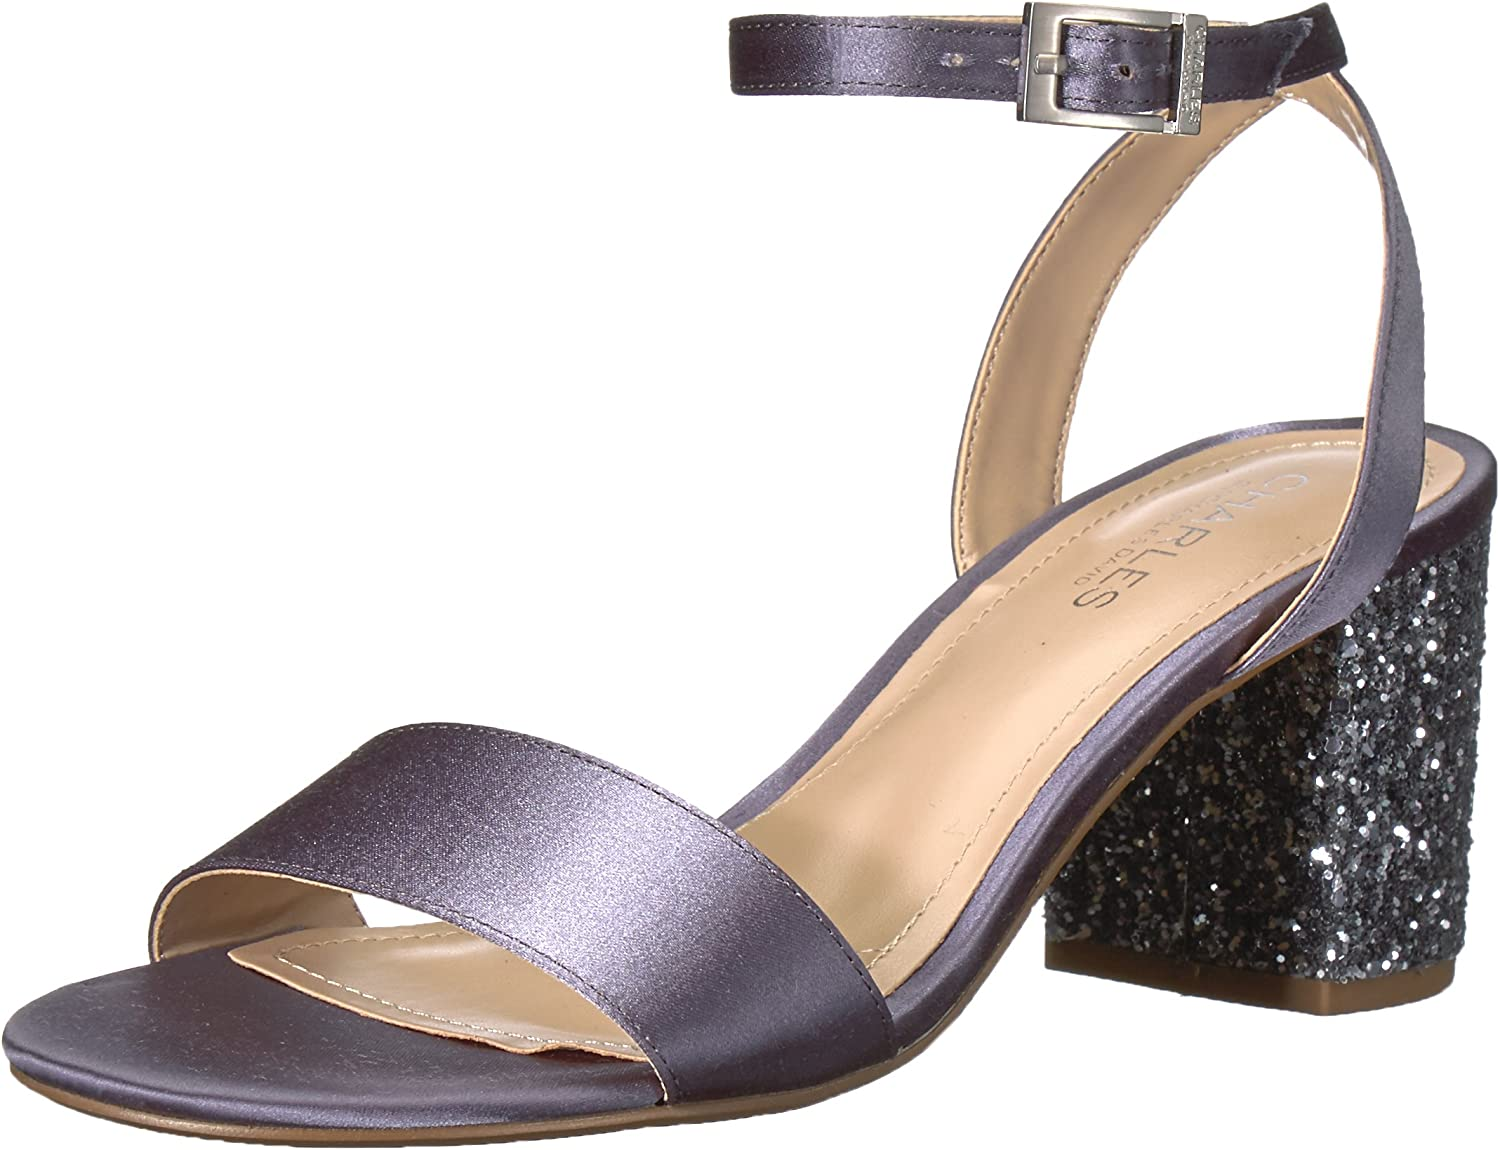 Charles by Charles David Women's Keenan Heeled Sandal